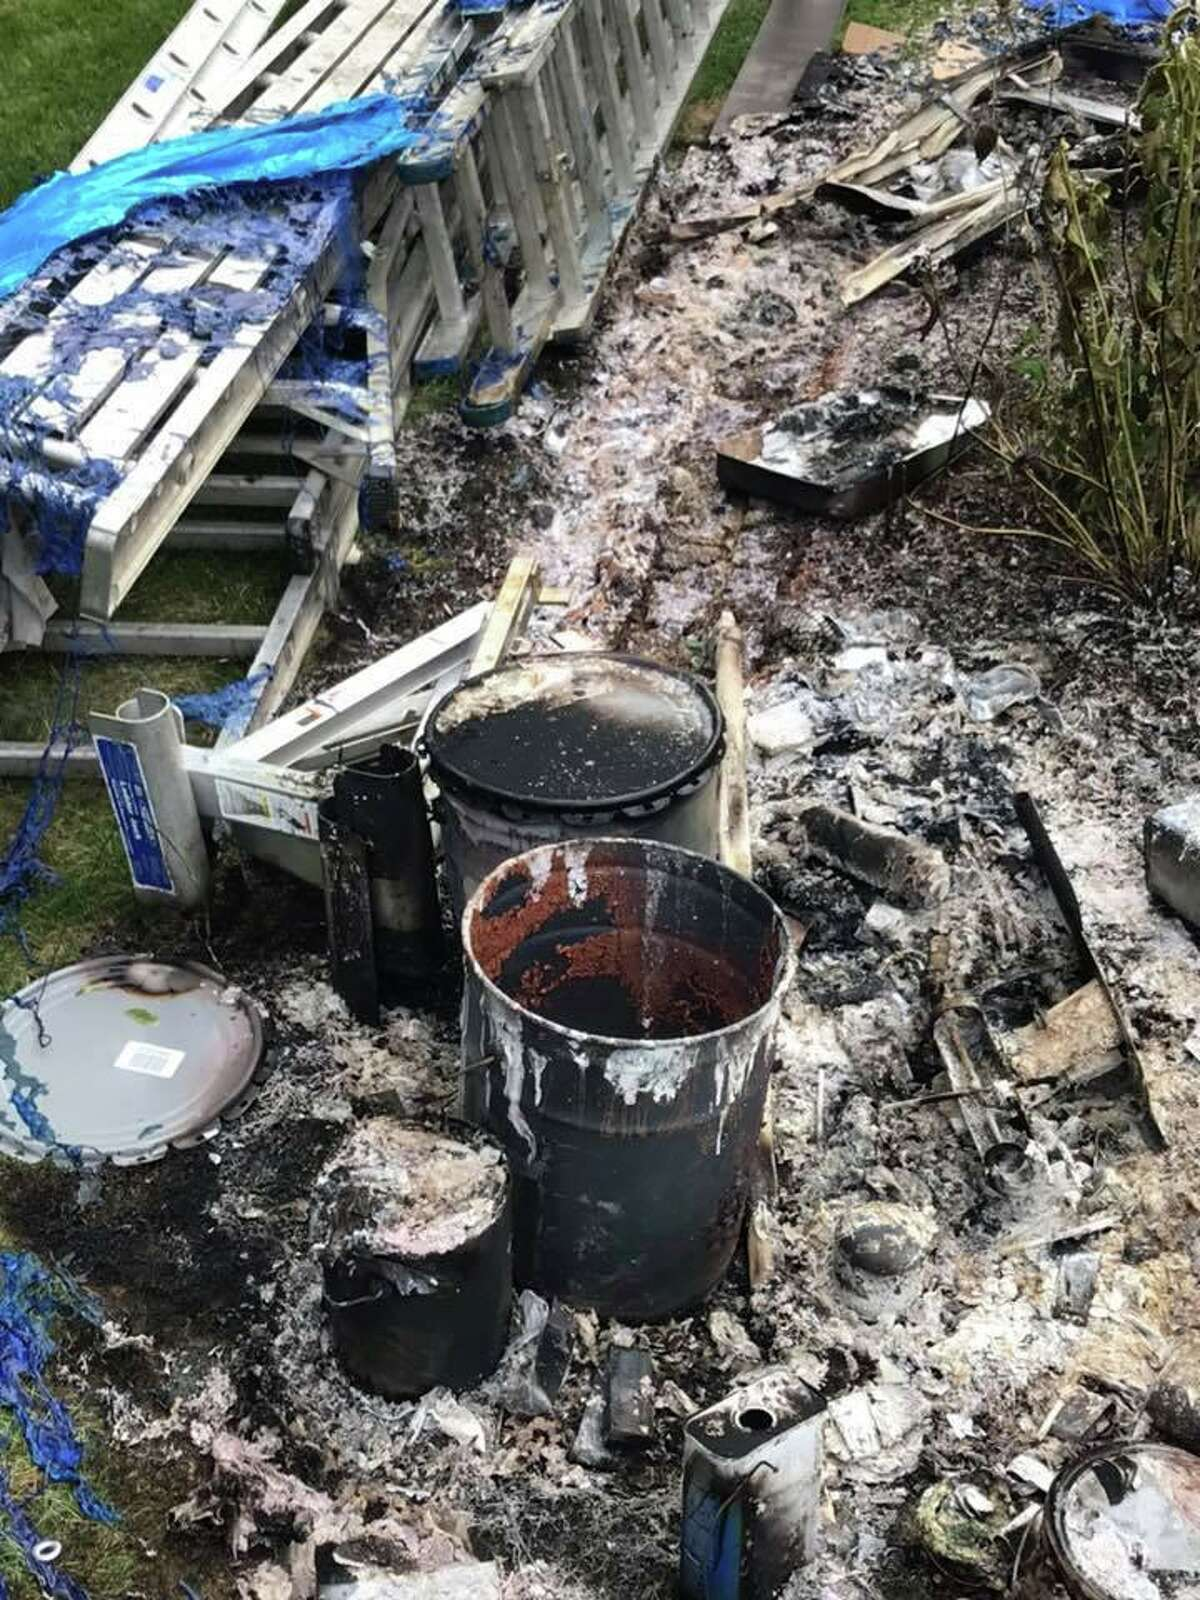 Monroe firefighters believe painter's equipment naturally combusted and caused a flash fire that burned materials and shrubbery. Firefighters investigated on Aug. 31, 2019.